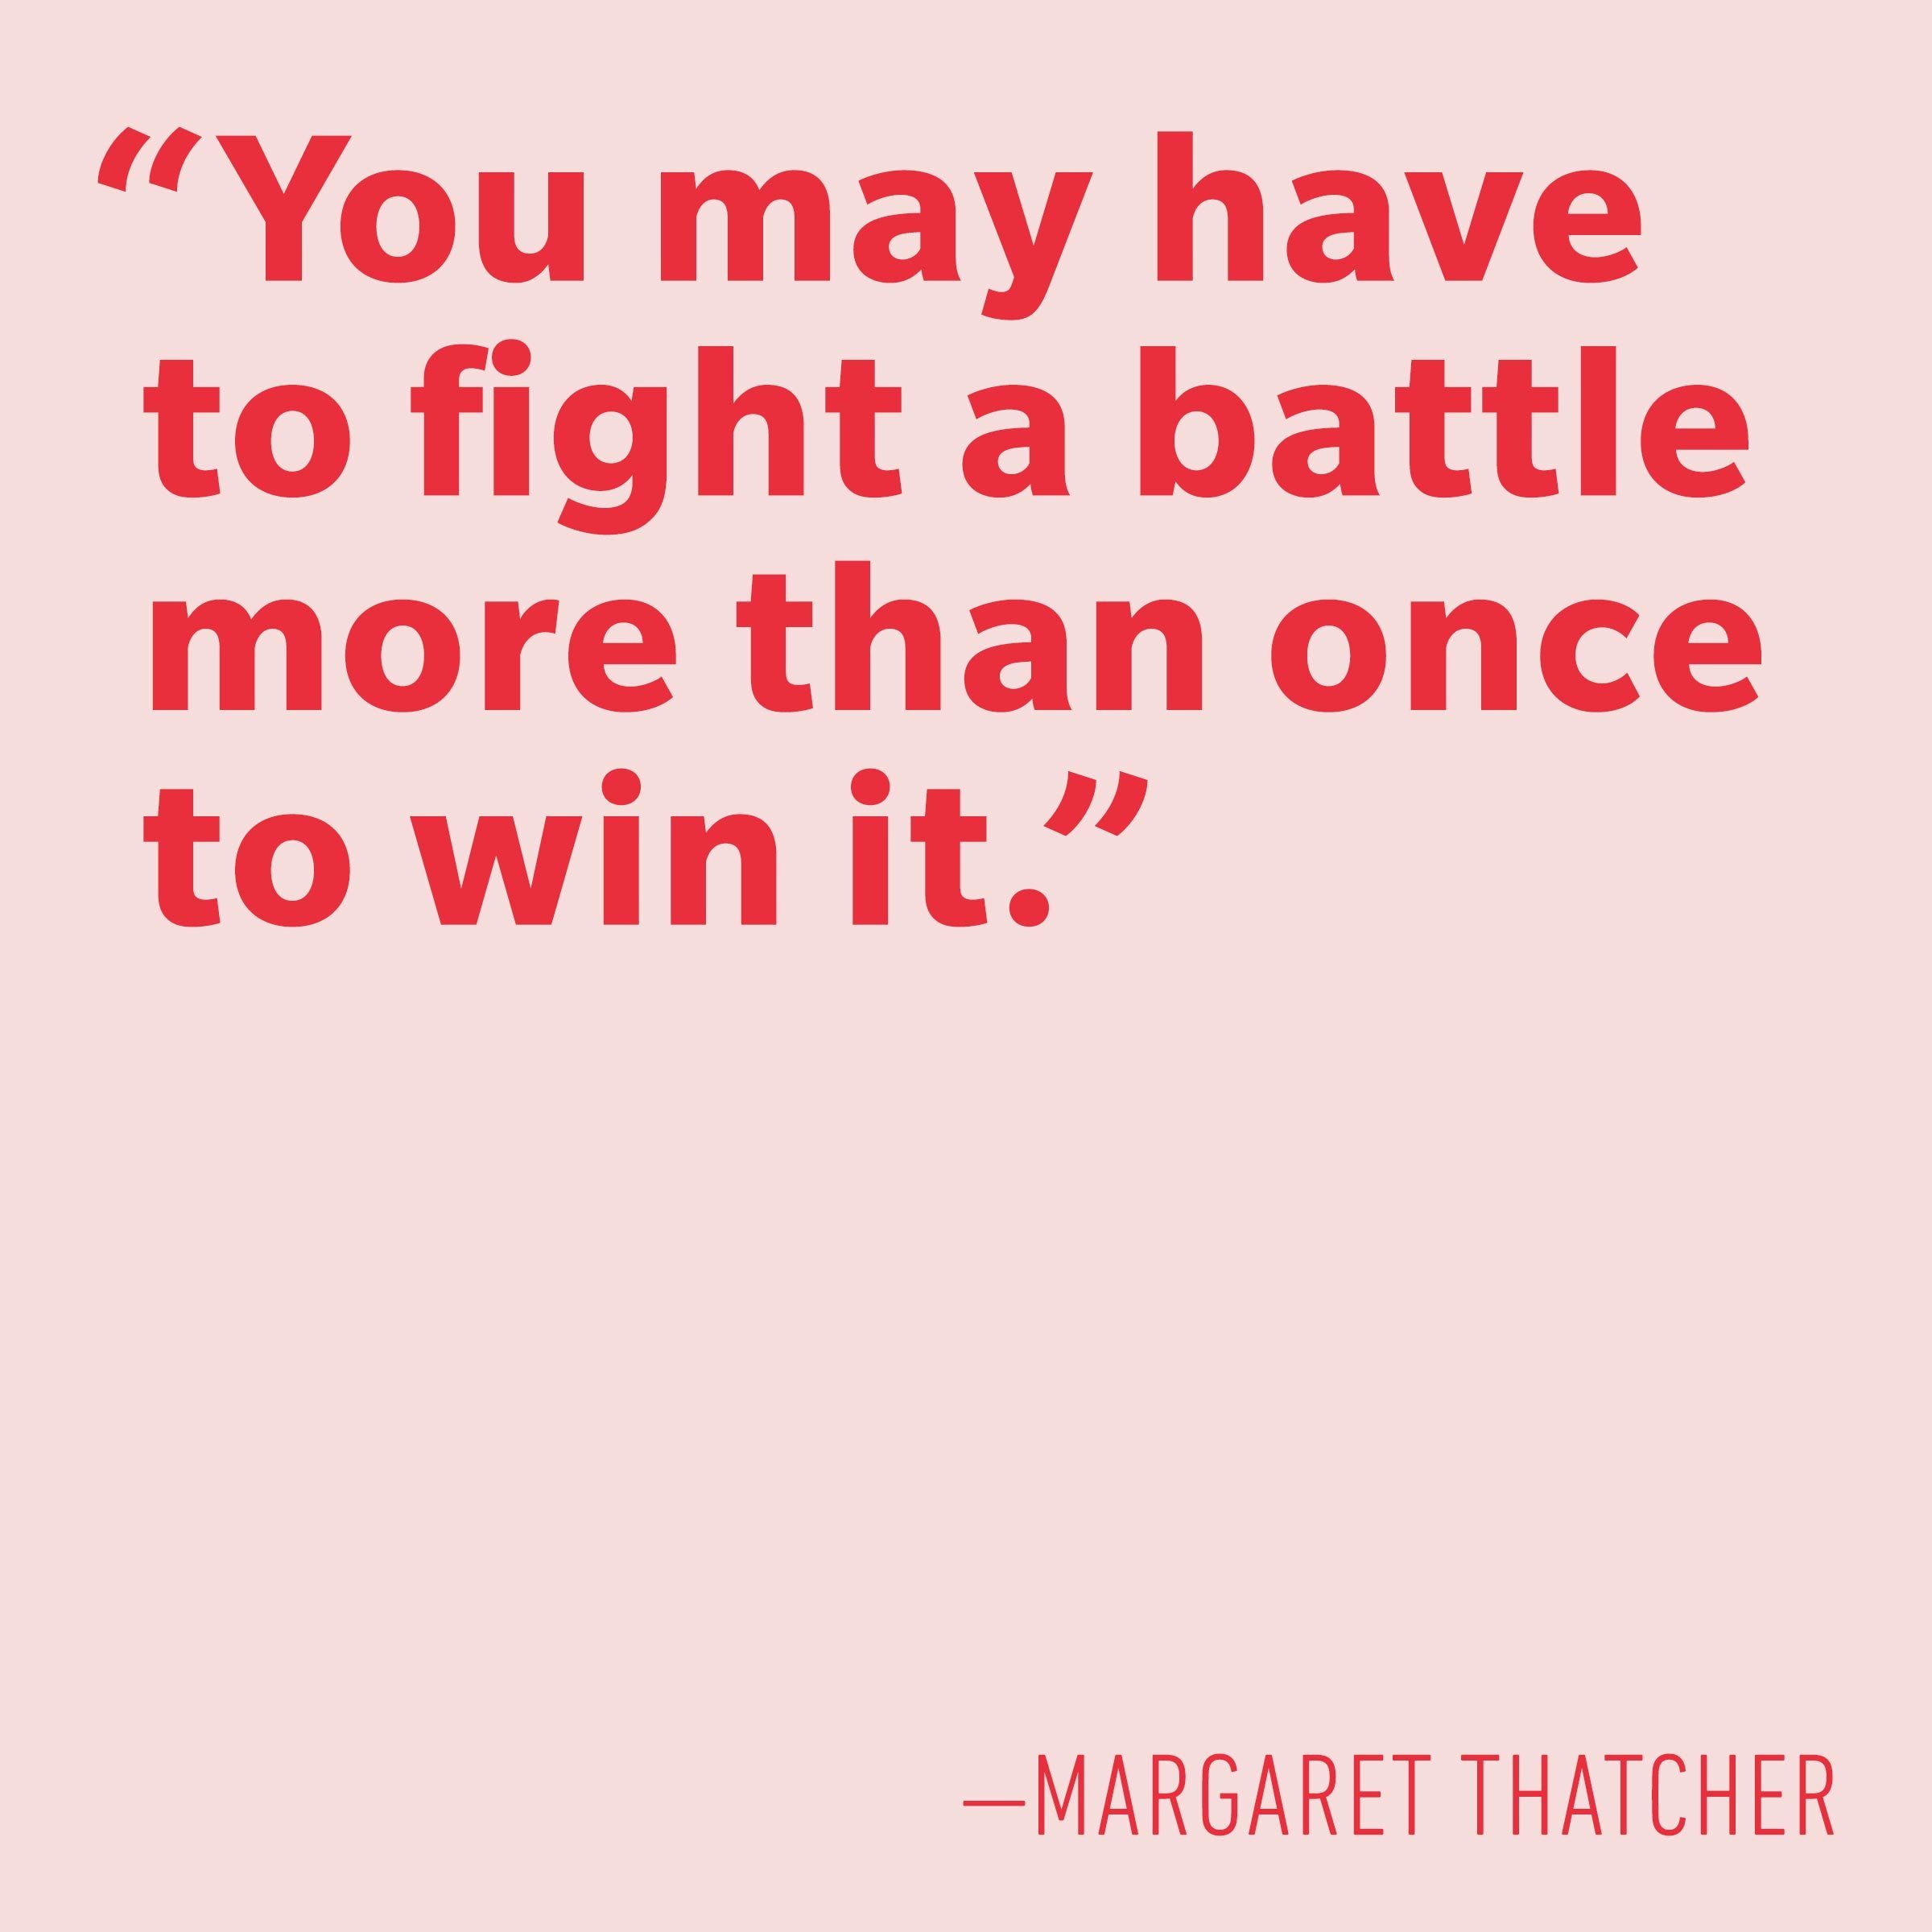 Motivational quotes - Margaret Thatcher